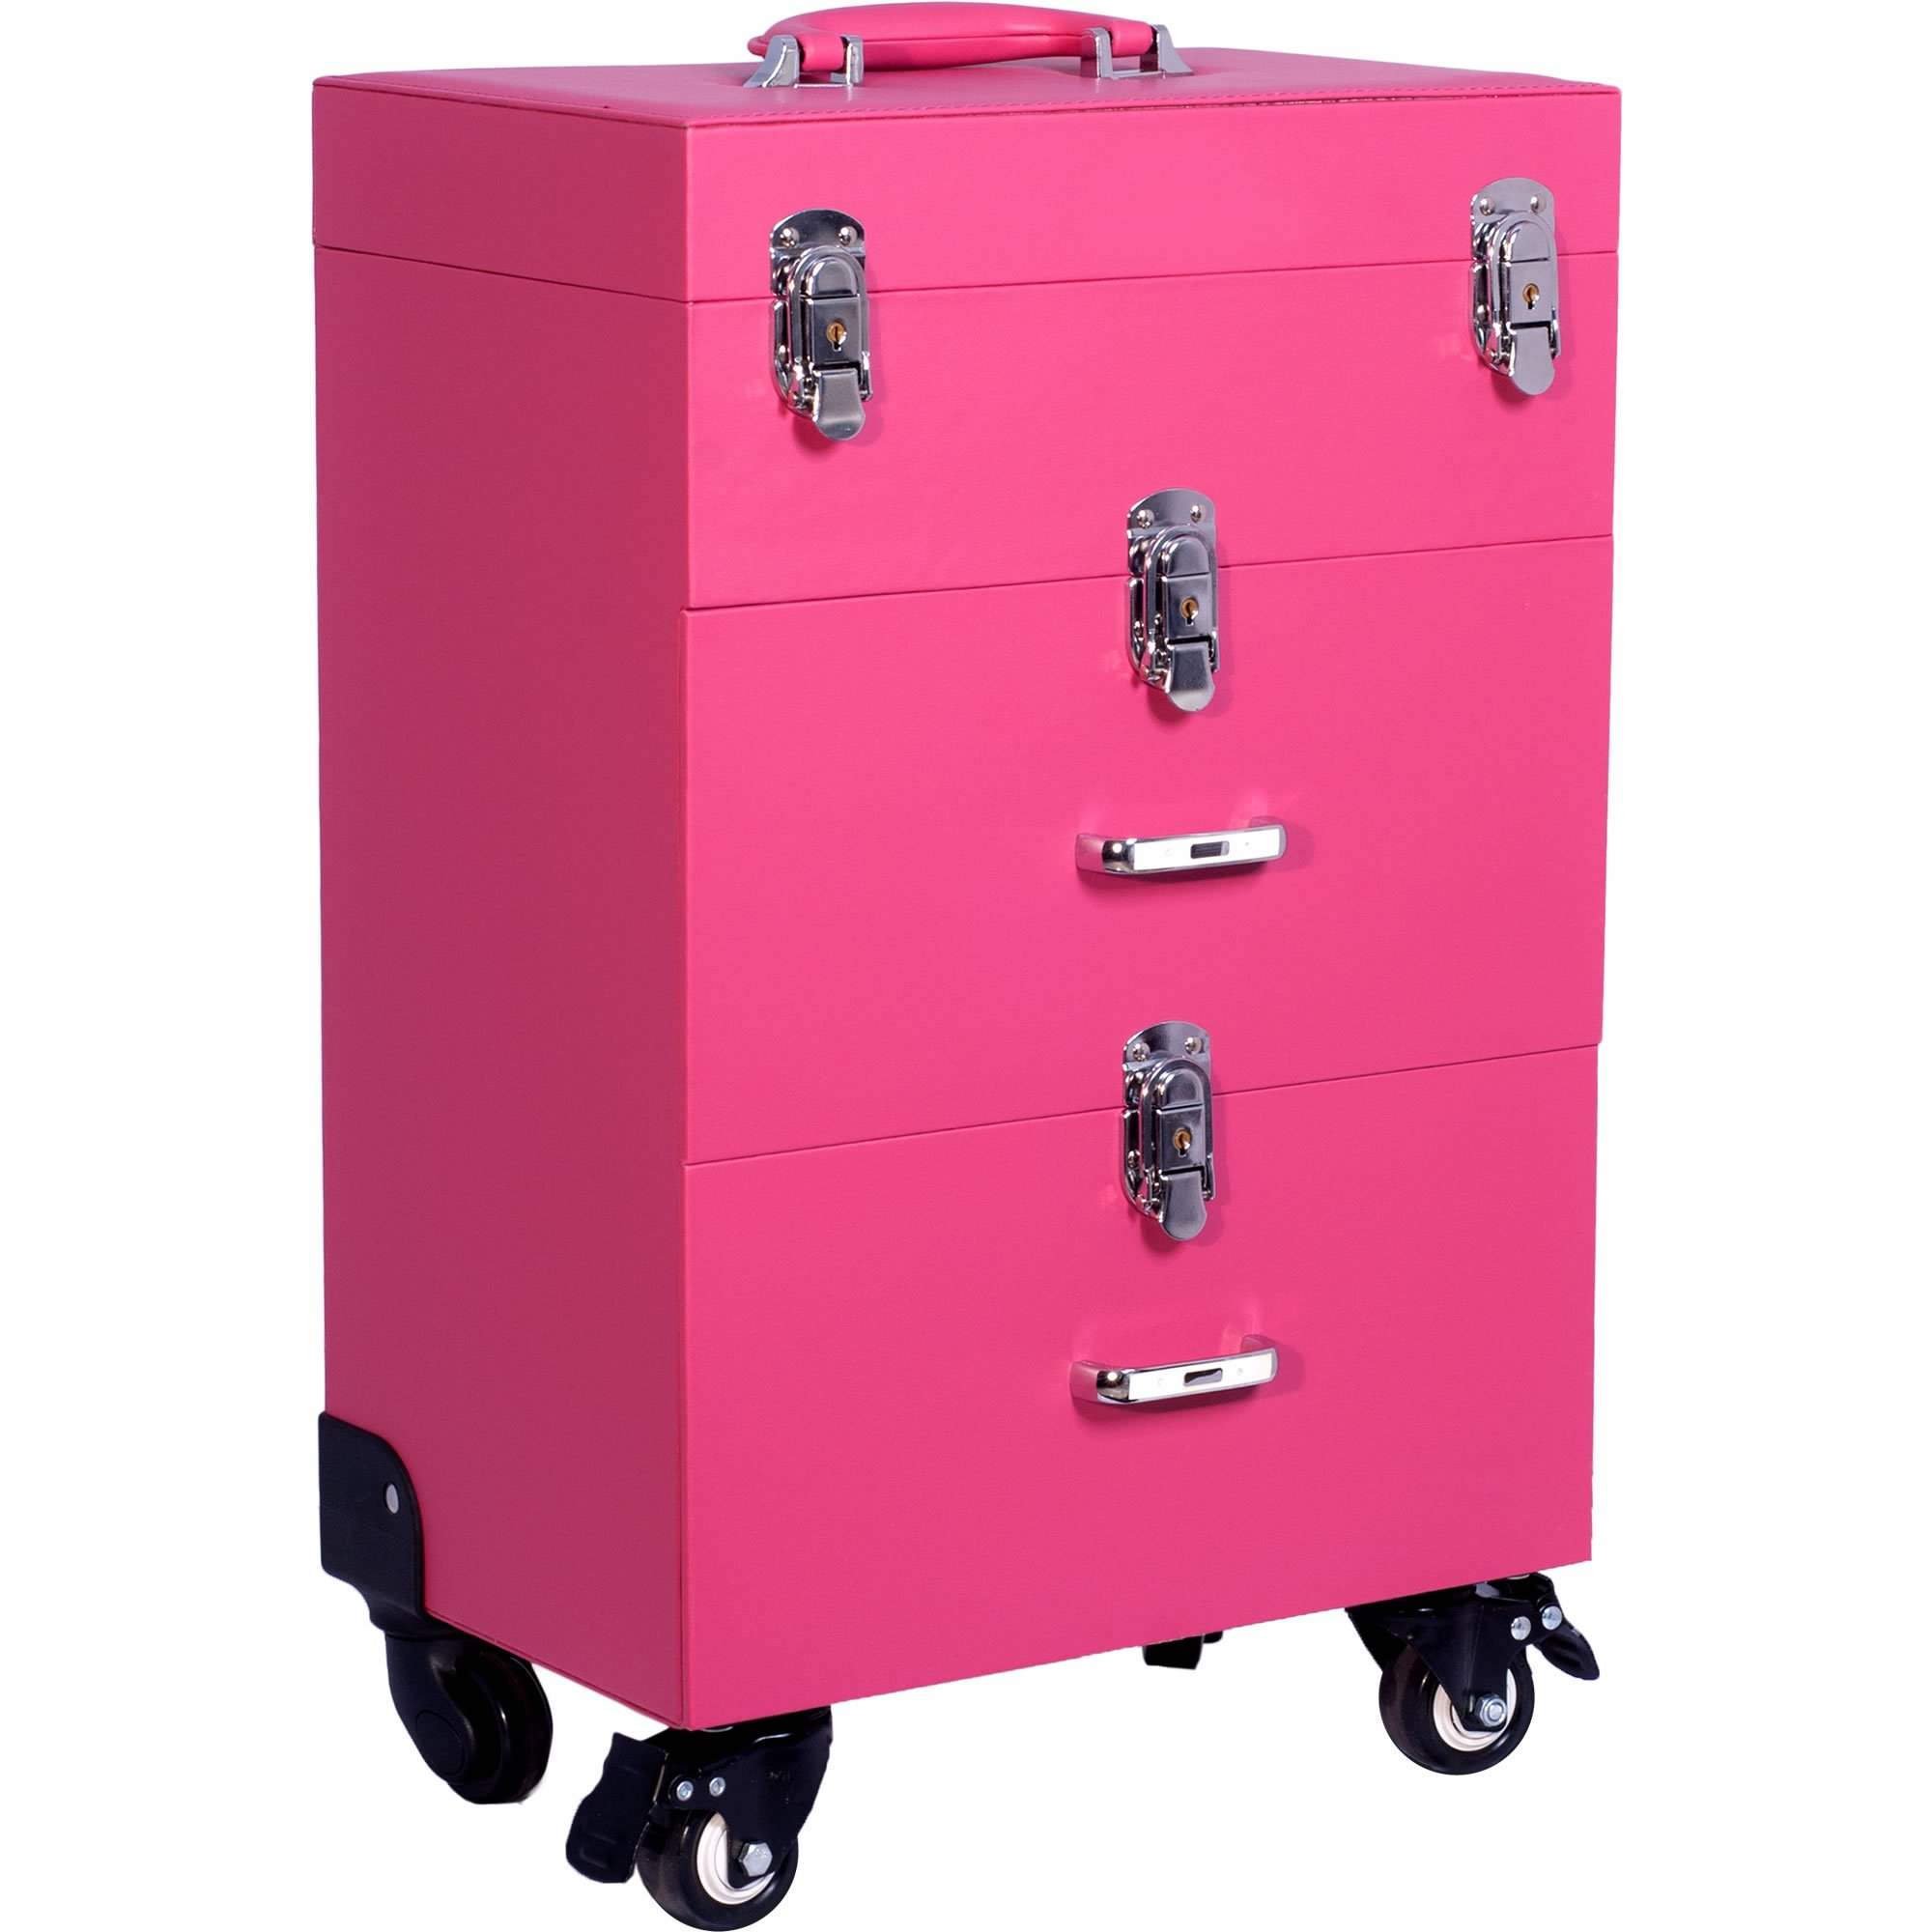 Sunrise Faux Leather Professional Nail Artistry 4 Wheel Rolling Makeup Case, Pink by SunRise